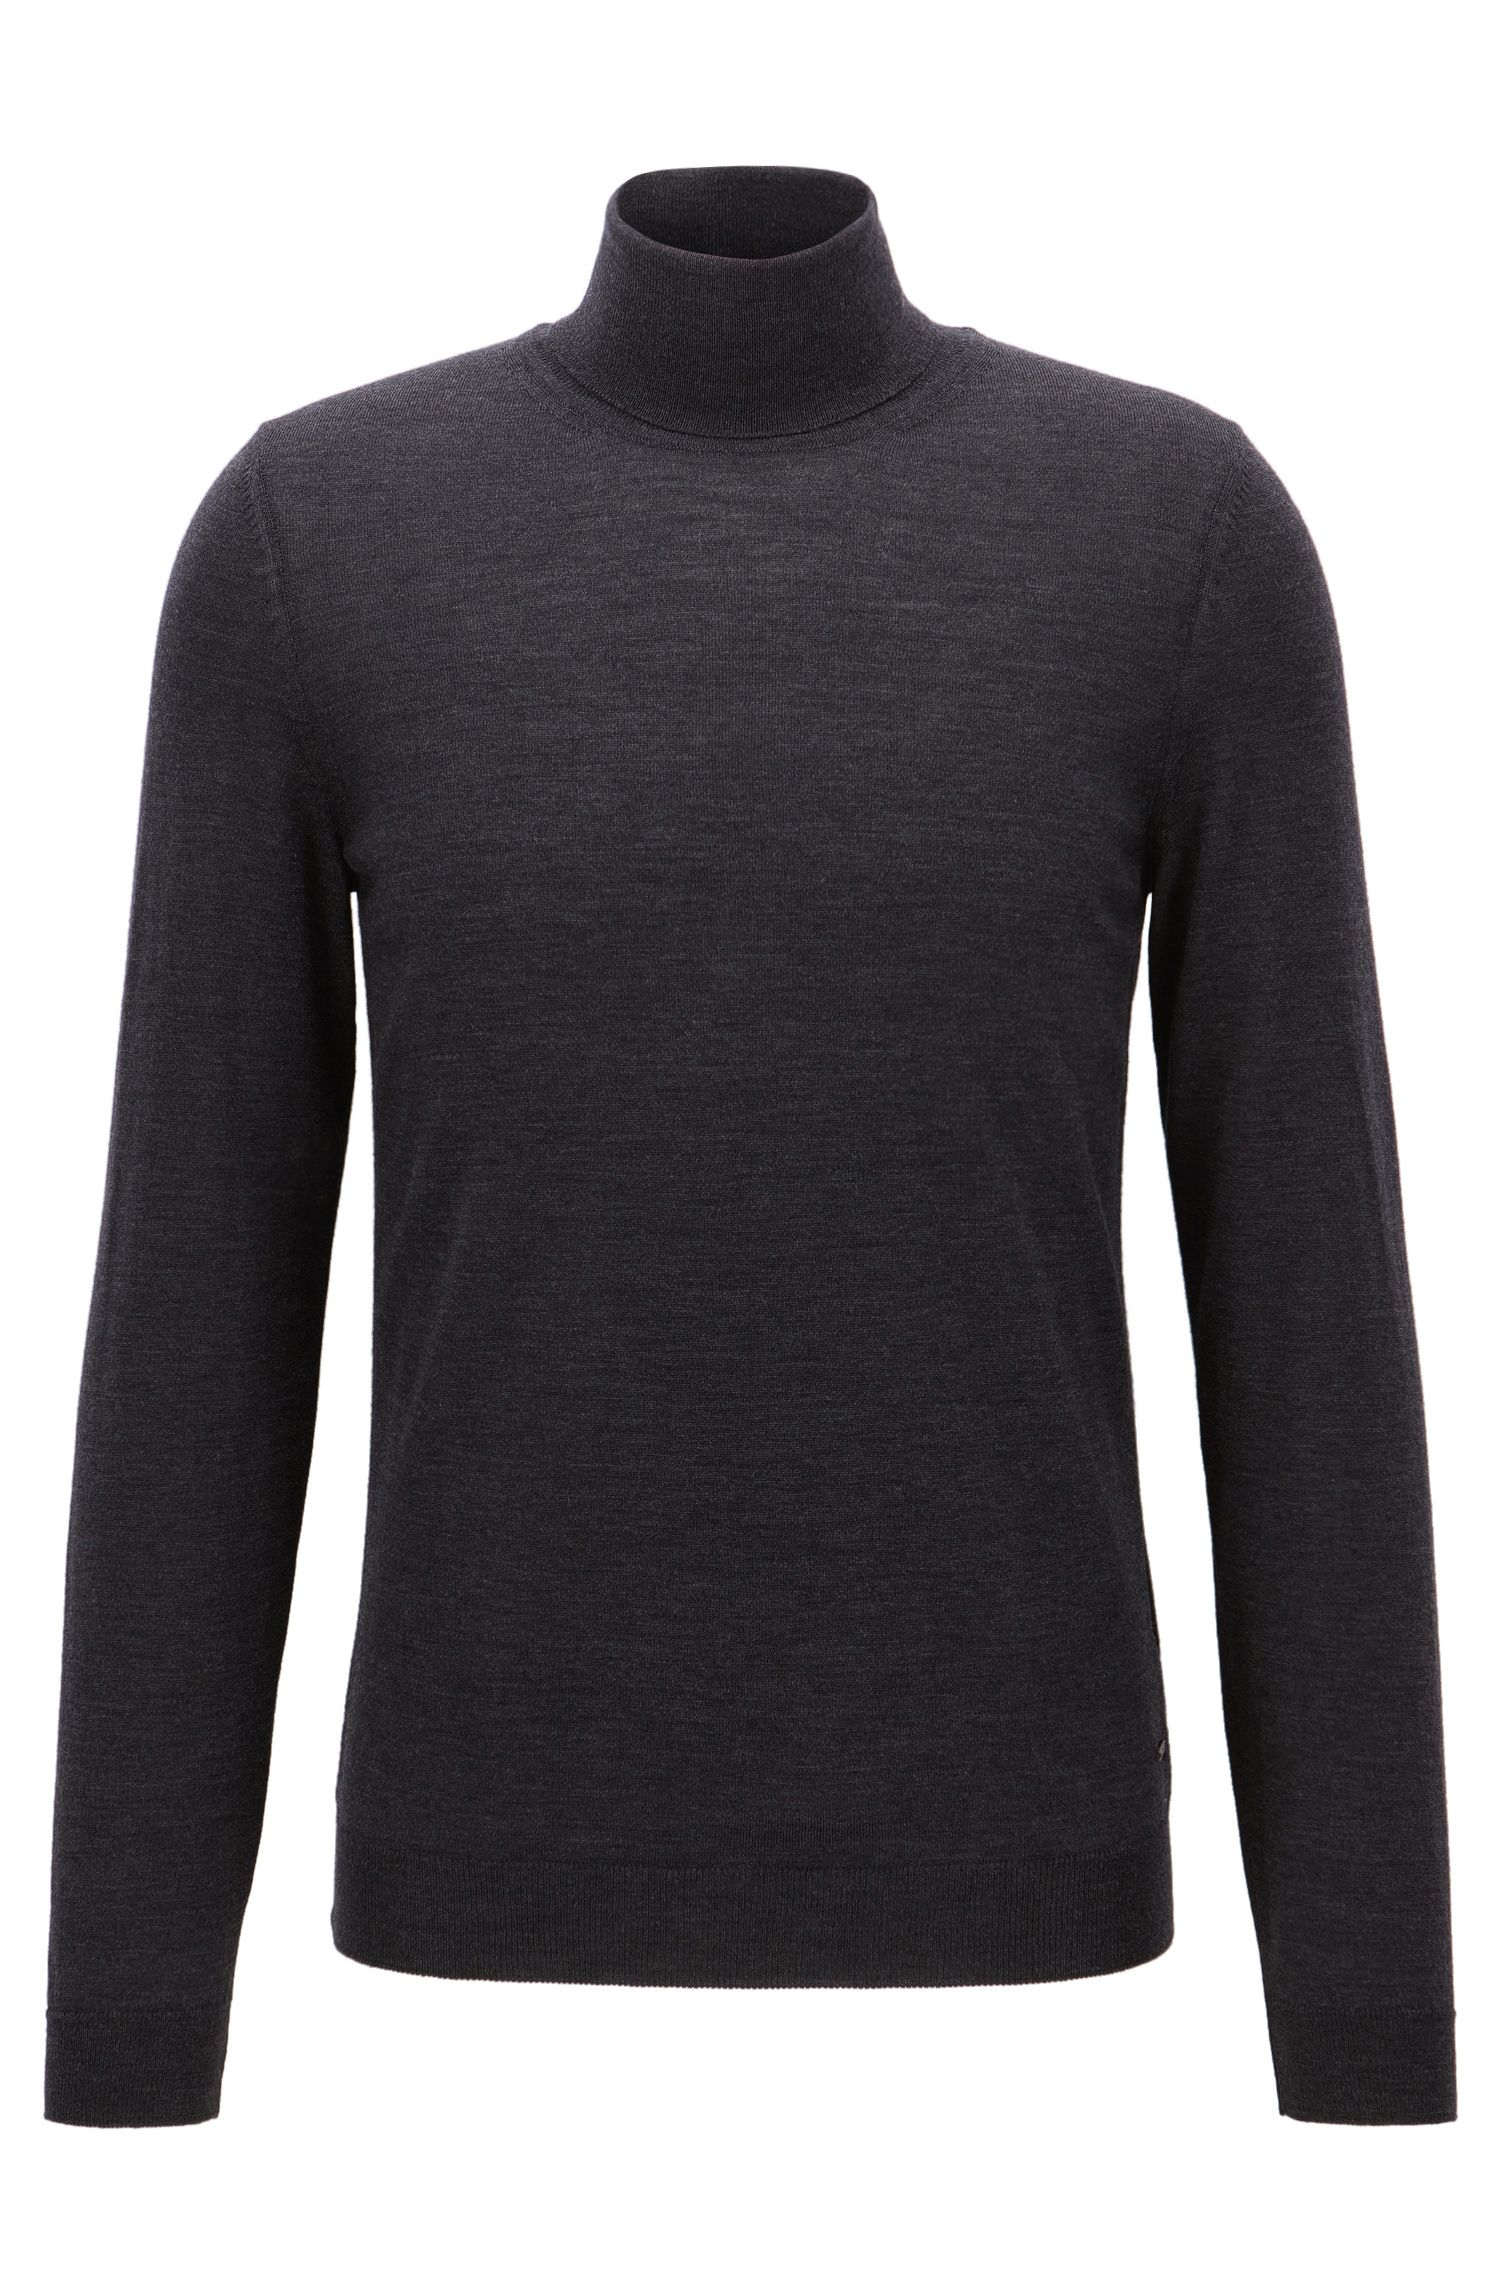 Turtleneck Extra-Fine Merino Wool Sweater | Musso N